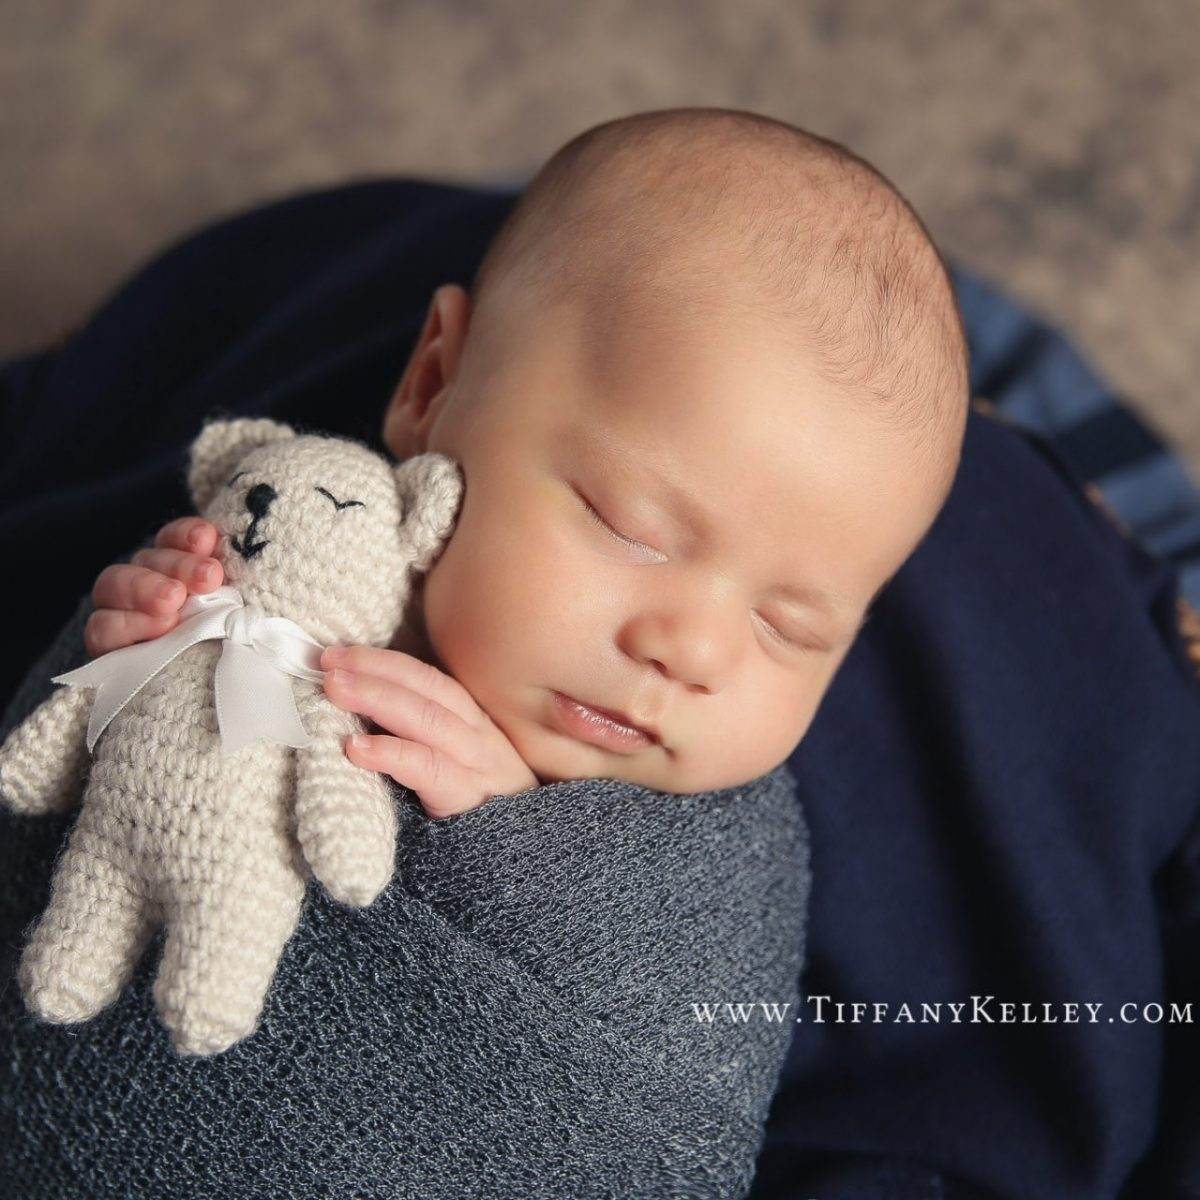 Owen Branson and Springfield MO Newborn Photographer Tiffany Kelley Photography